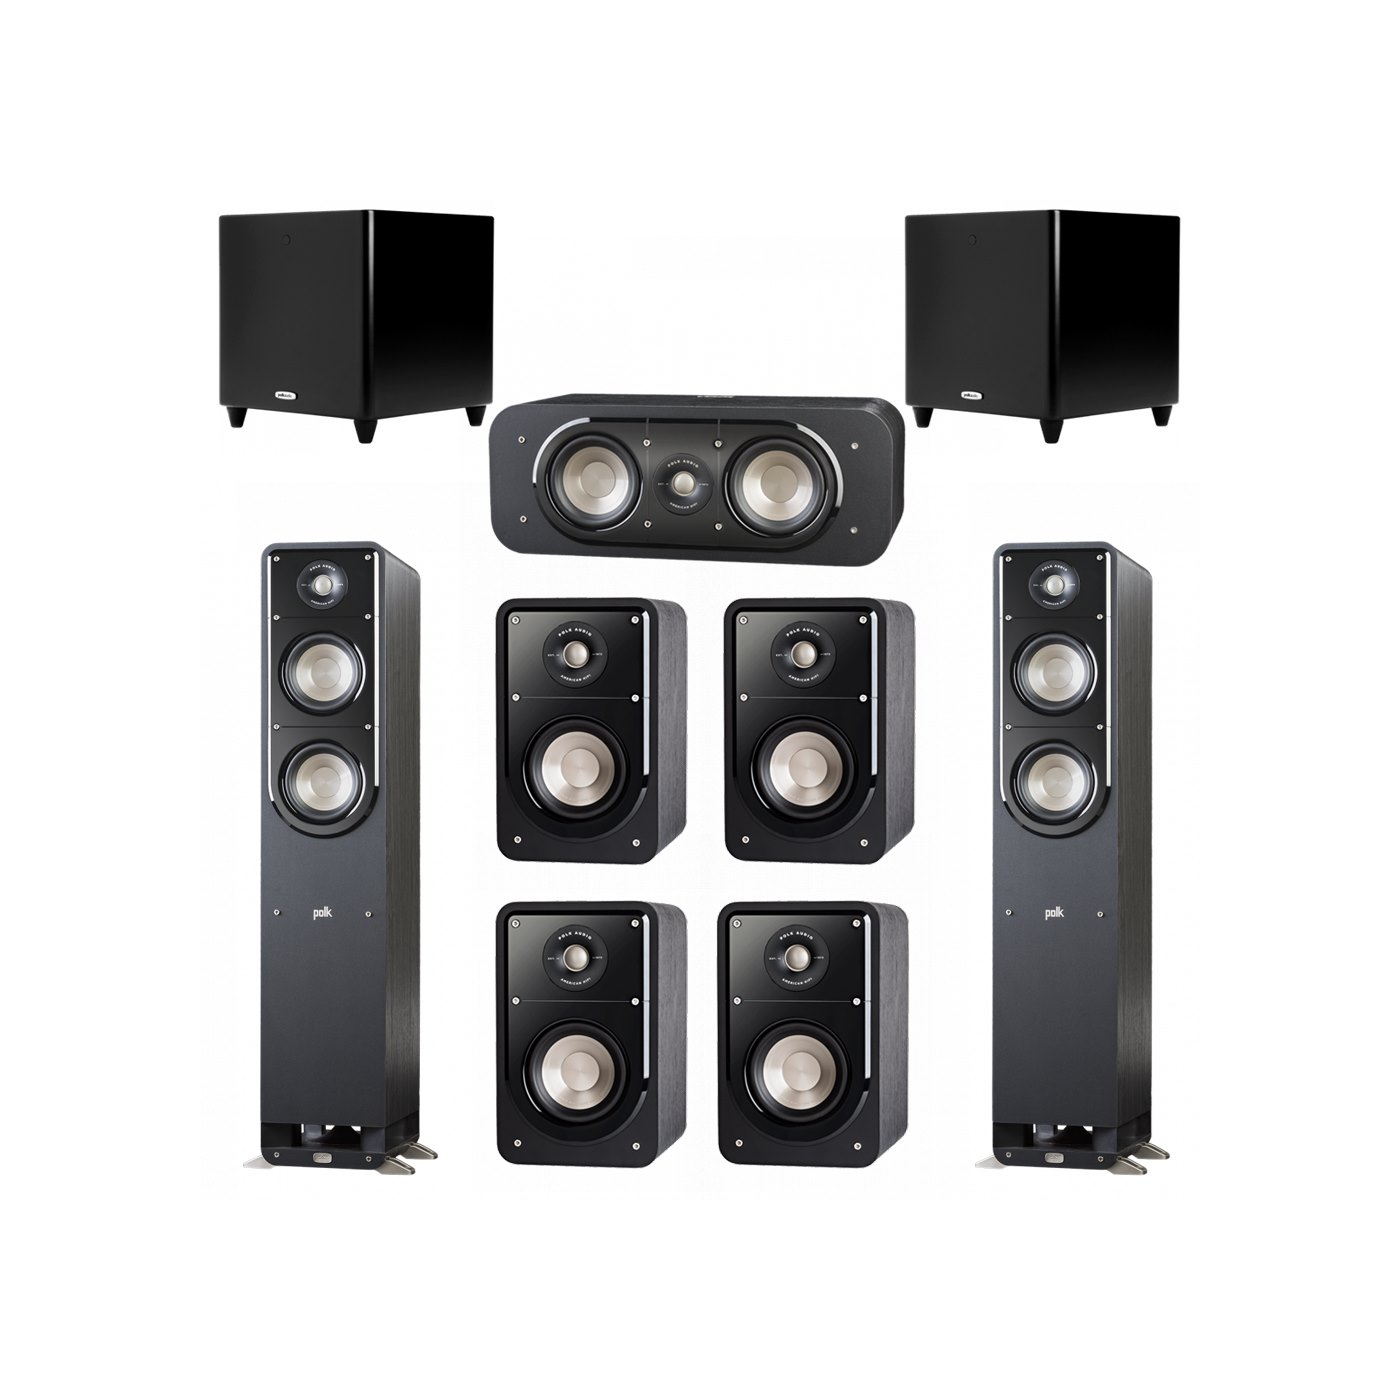 Polk Audio Signature 7.2 System with 2 S50 Tower Speaker, 1 Polk S30 Center Speaker, 4 Polk S15 Bookshelf Speaker, 2 Polk DSW PRO 550 wi Subwoofer